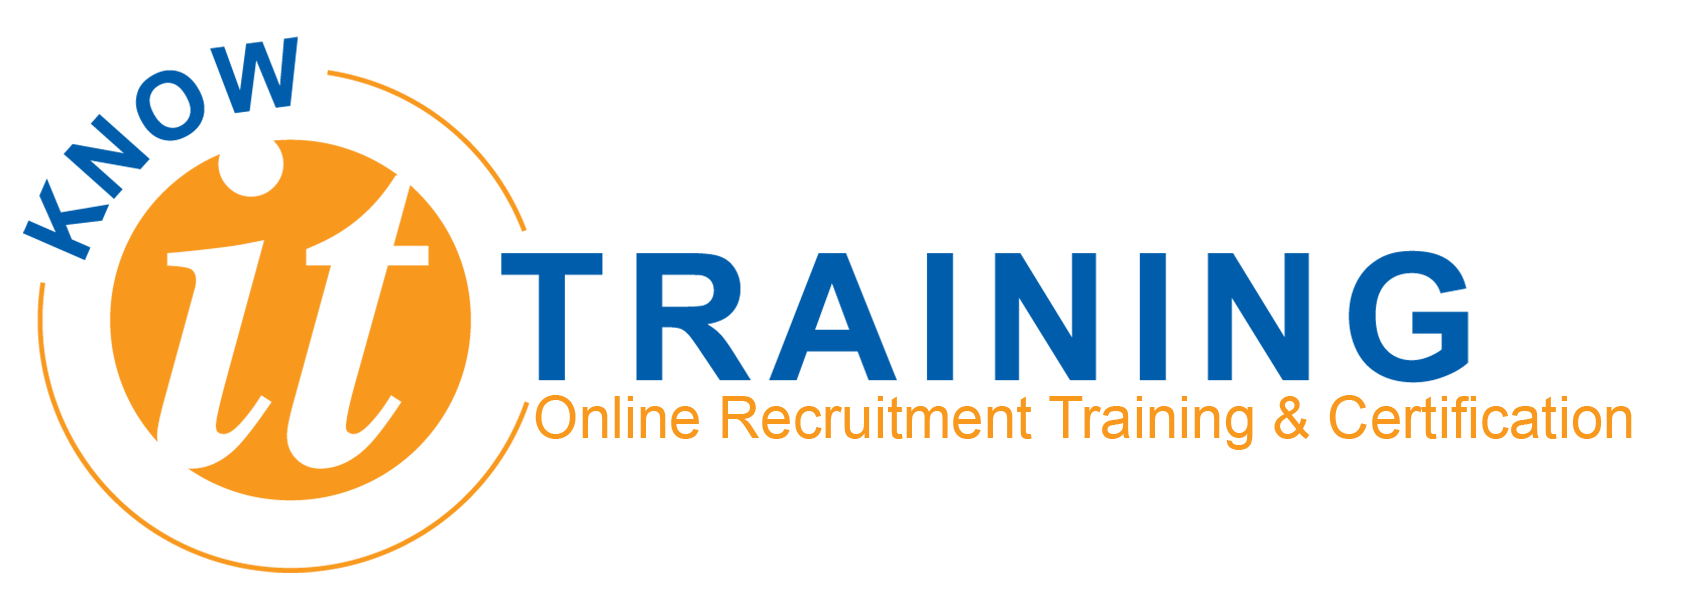 Blog recruiter hr news updates united states knowit training knowit training launches it training video series for recruiters and human resource professionals xflitez Choice Image